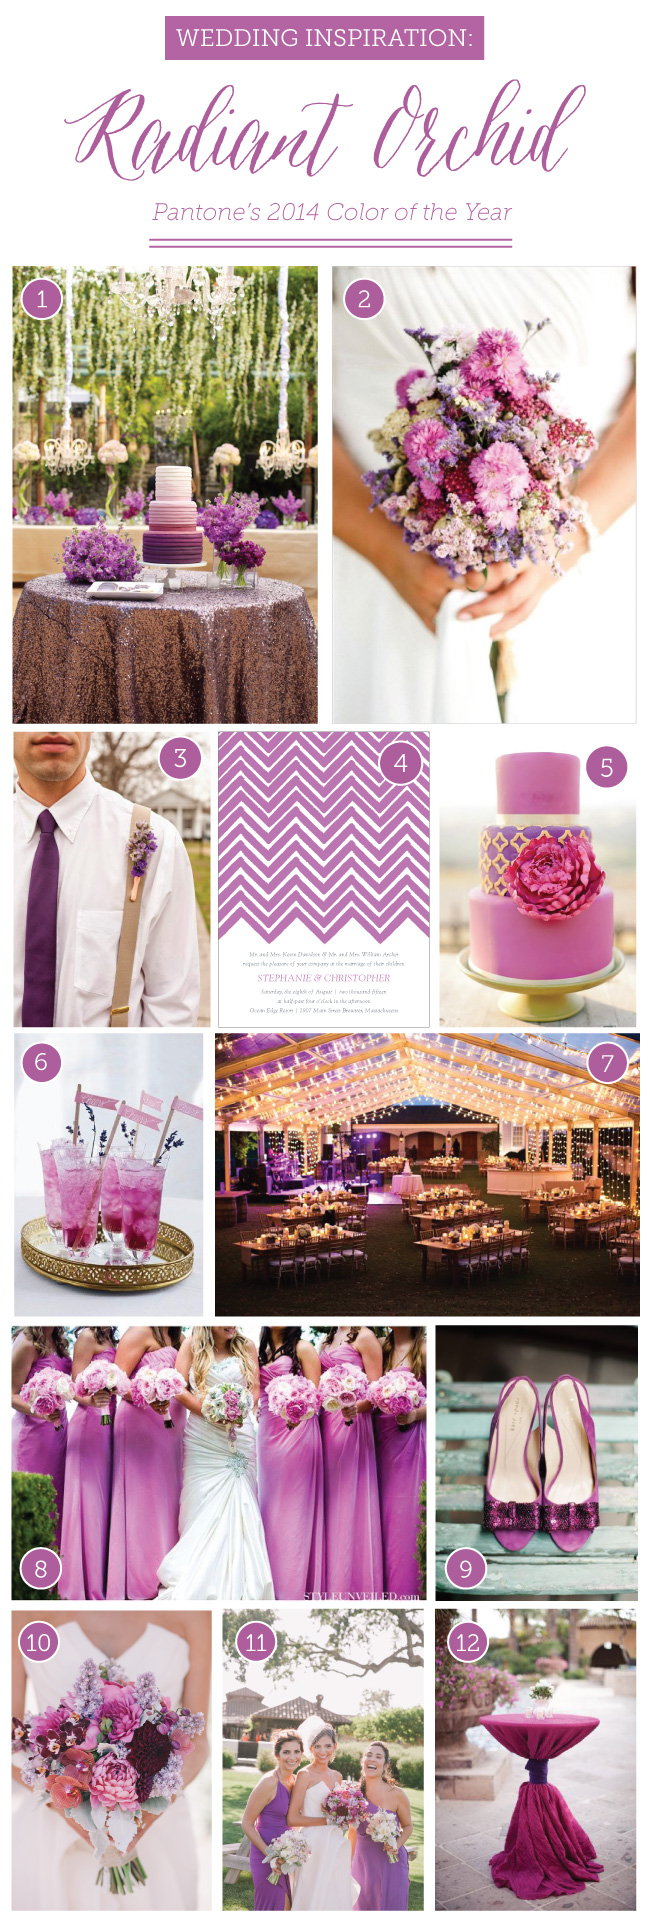 wedding ideas 4